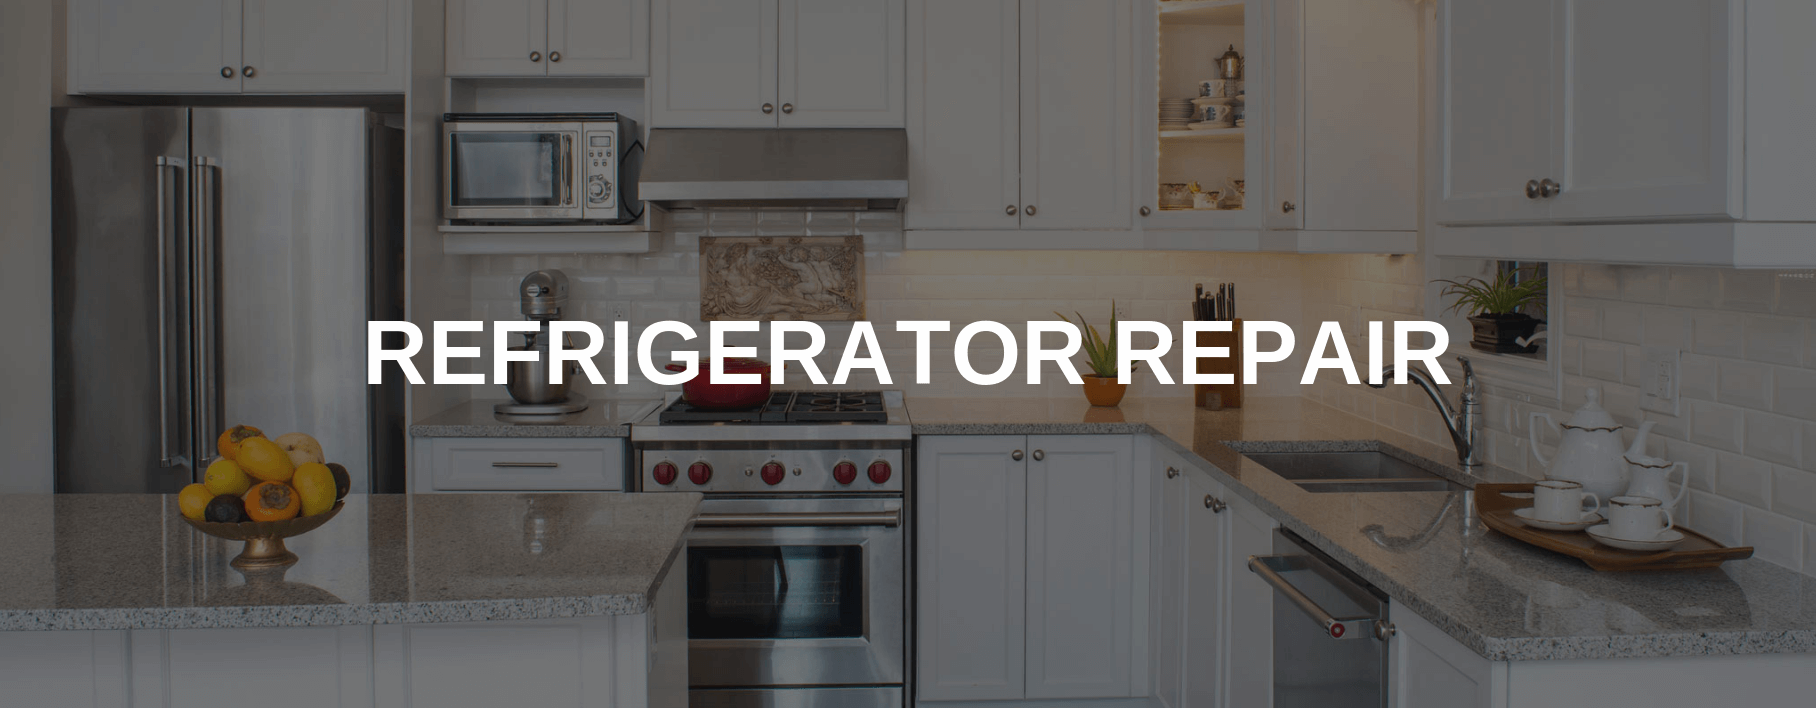 california refrigerator repair